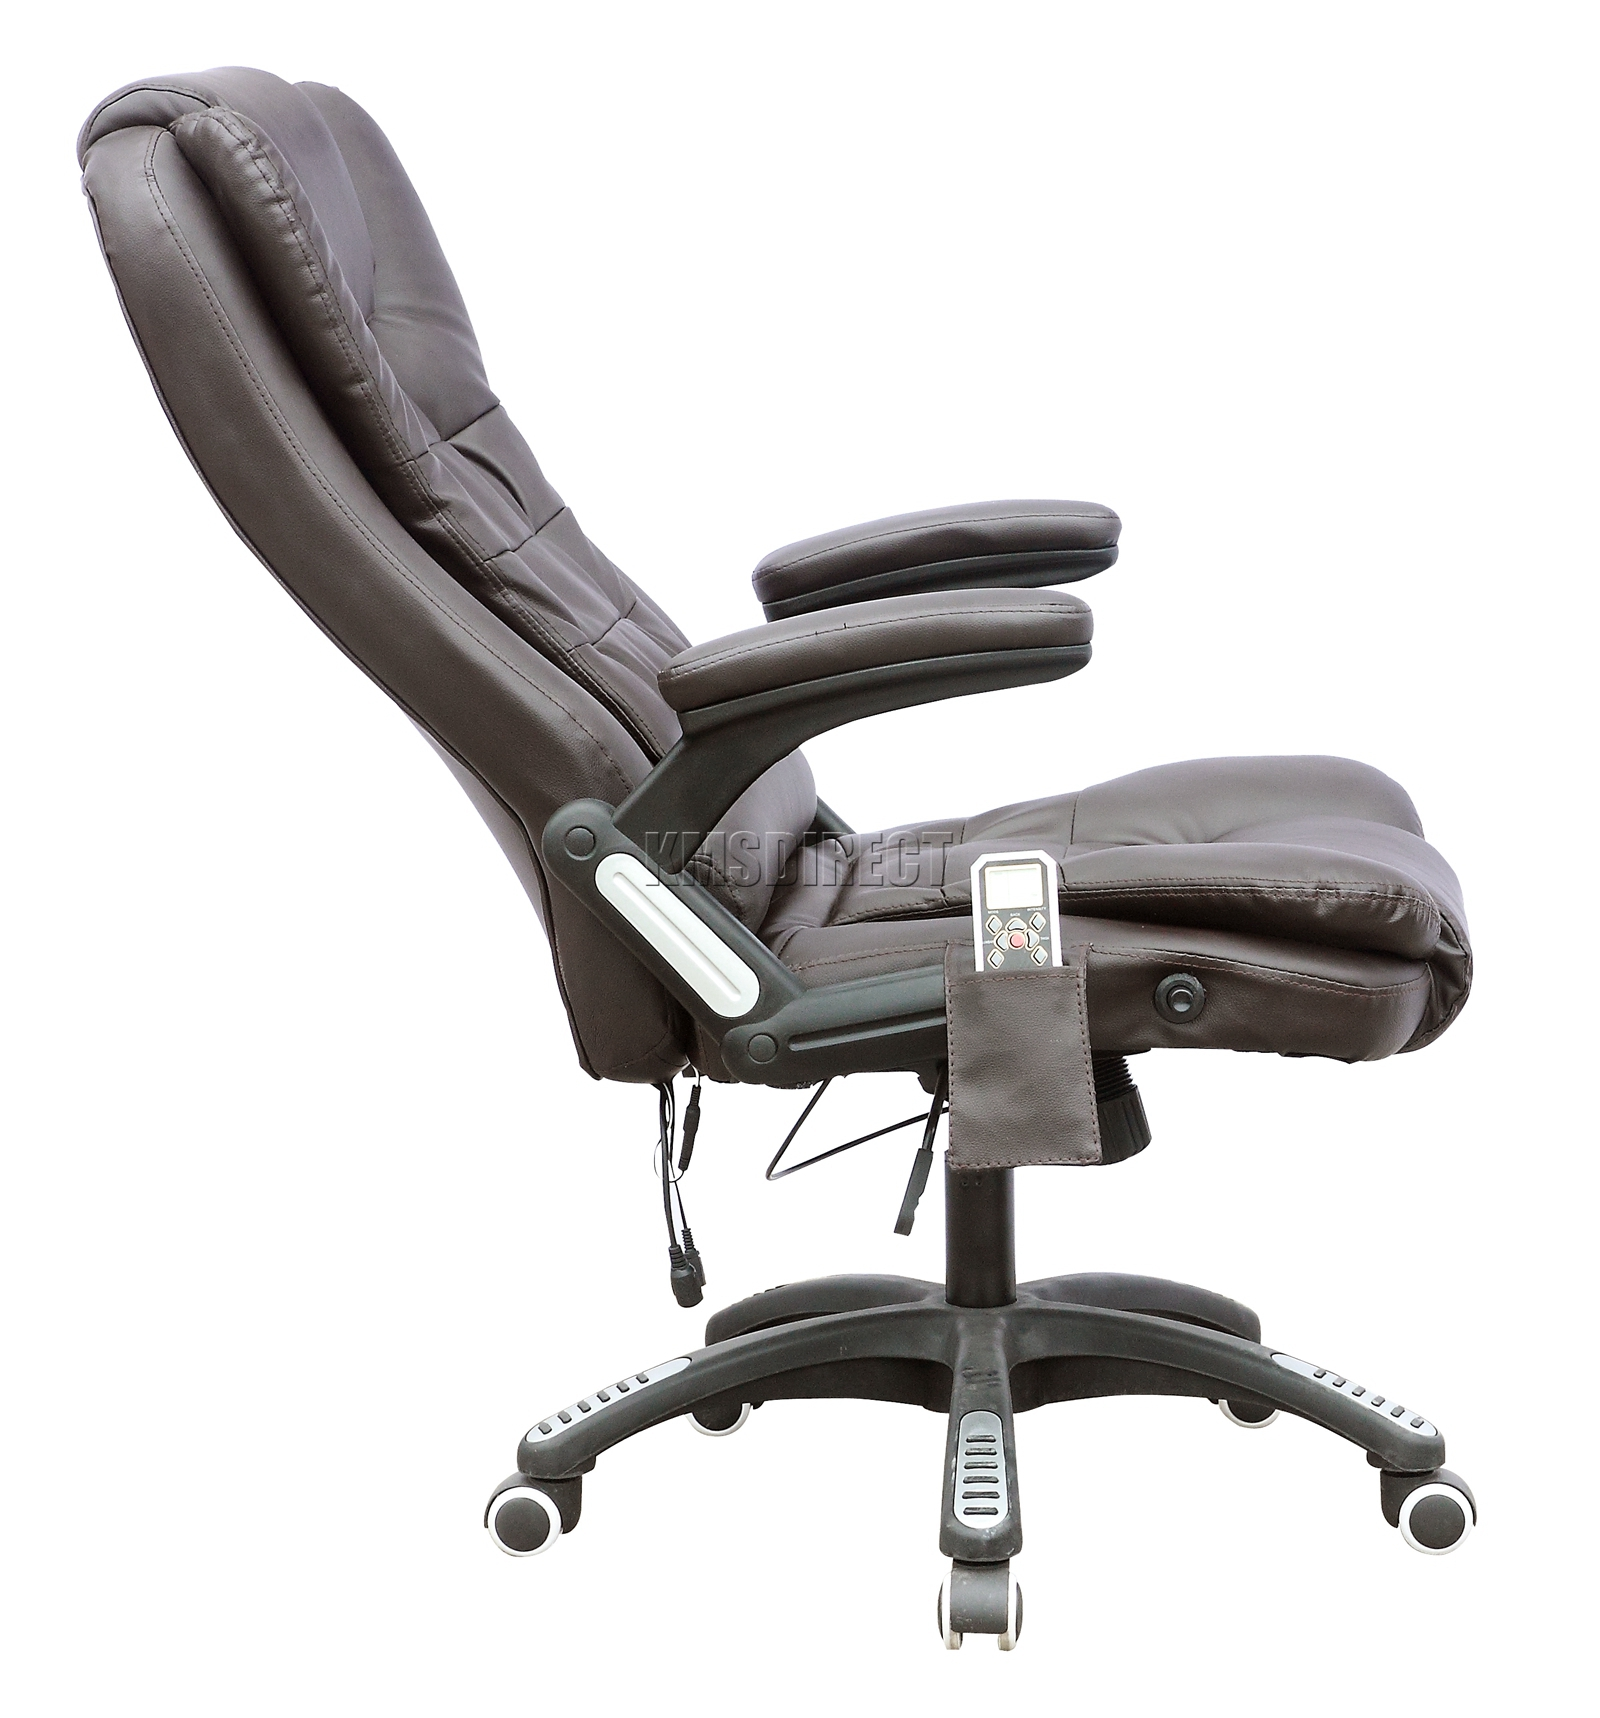 leg rest with reclining recliner med to office chair art a tips posters find